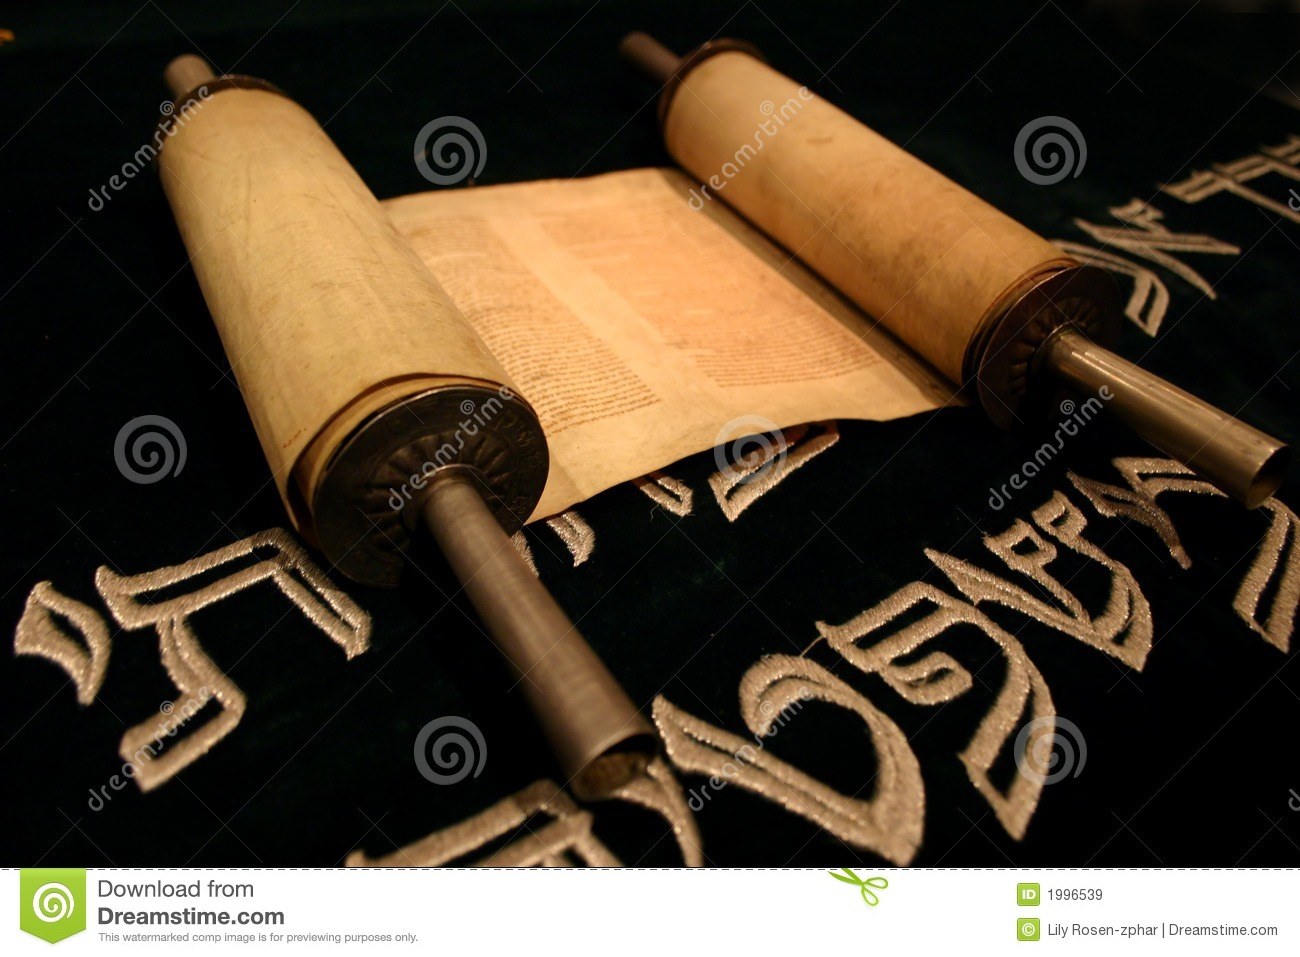 Jewish Symbols Royalty Free Stock Images - Image: 1996539